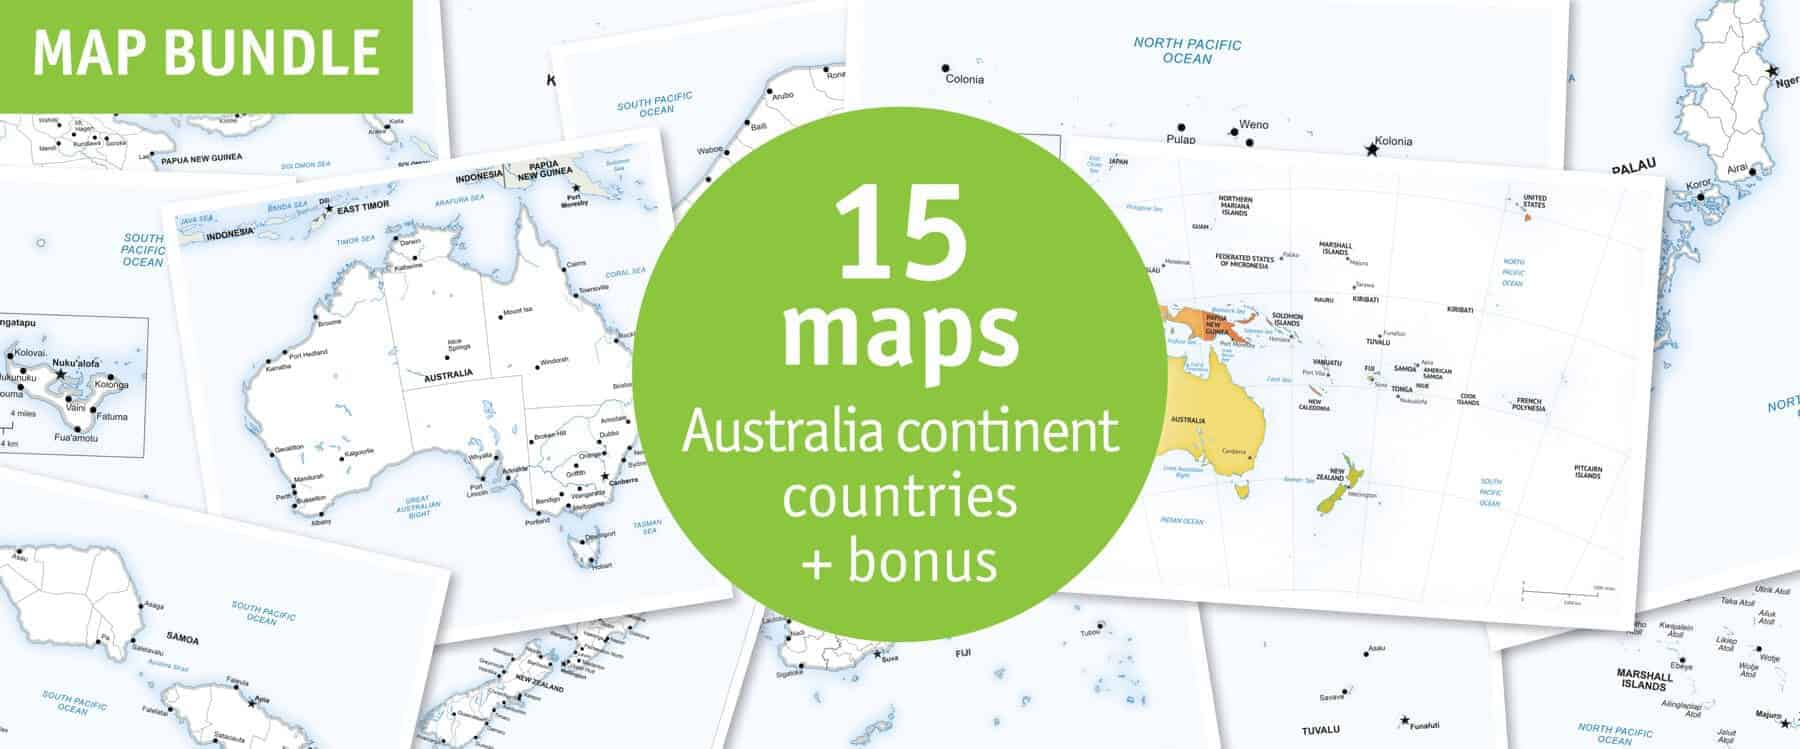 Map Of Australia To Buy.Australia Continent Countries 15 Maps Bundle Discount